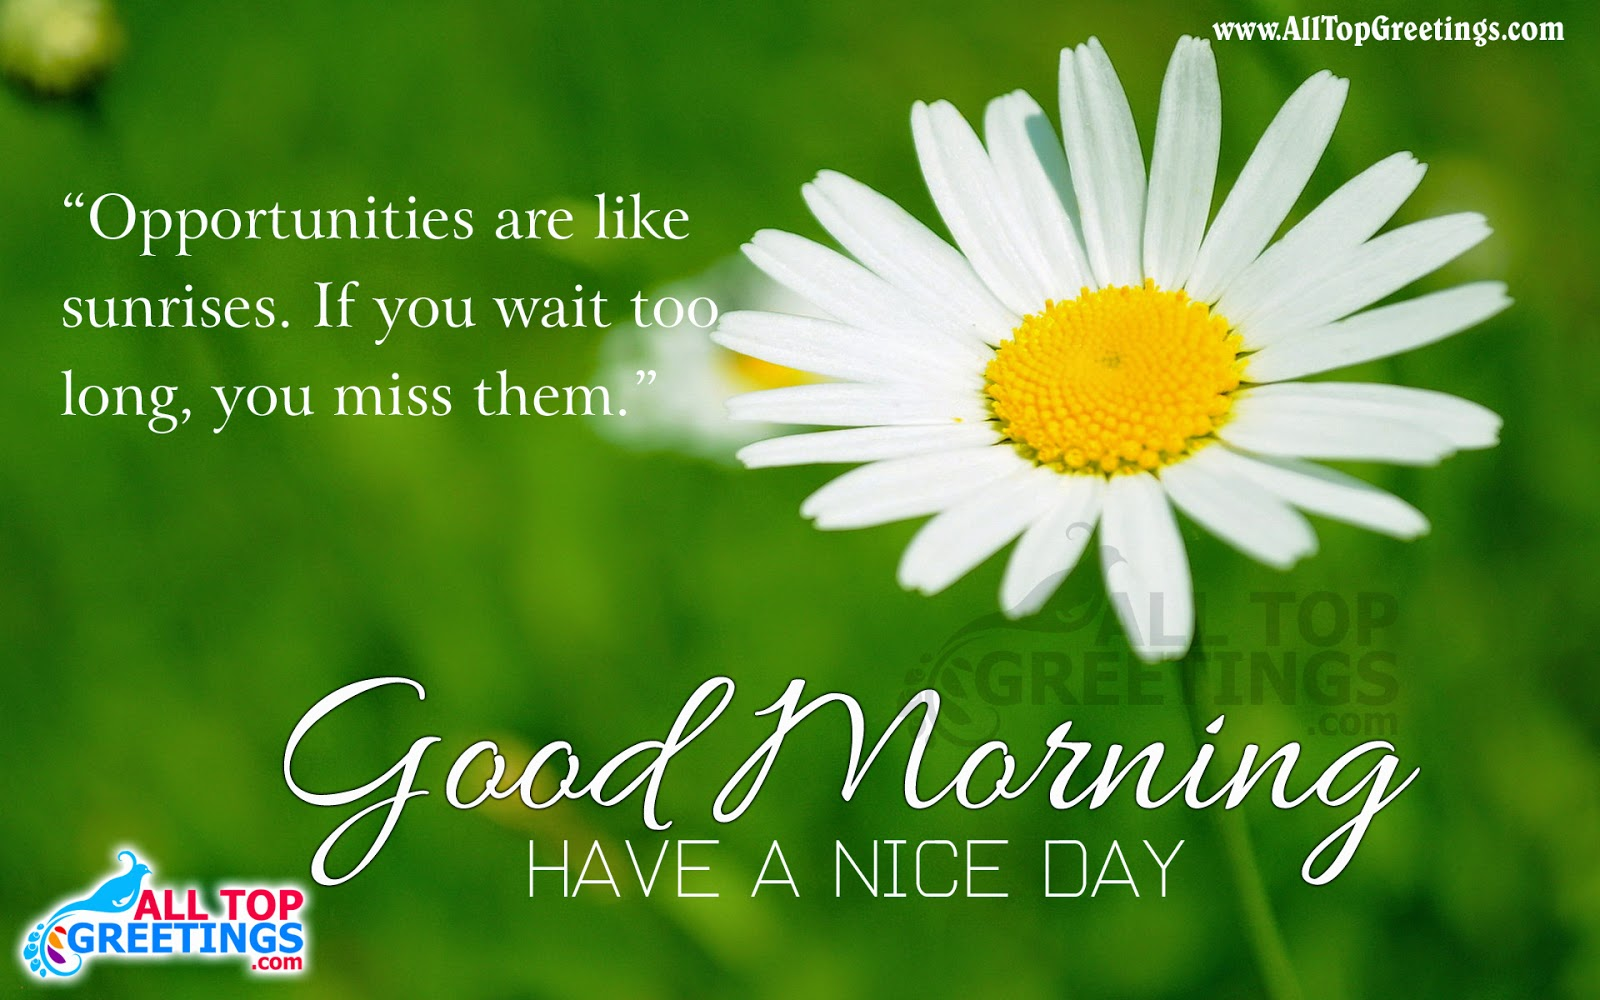 Kannada Good Morning Quotes And Greetings Wishes 2306855